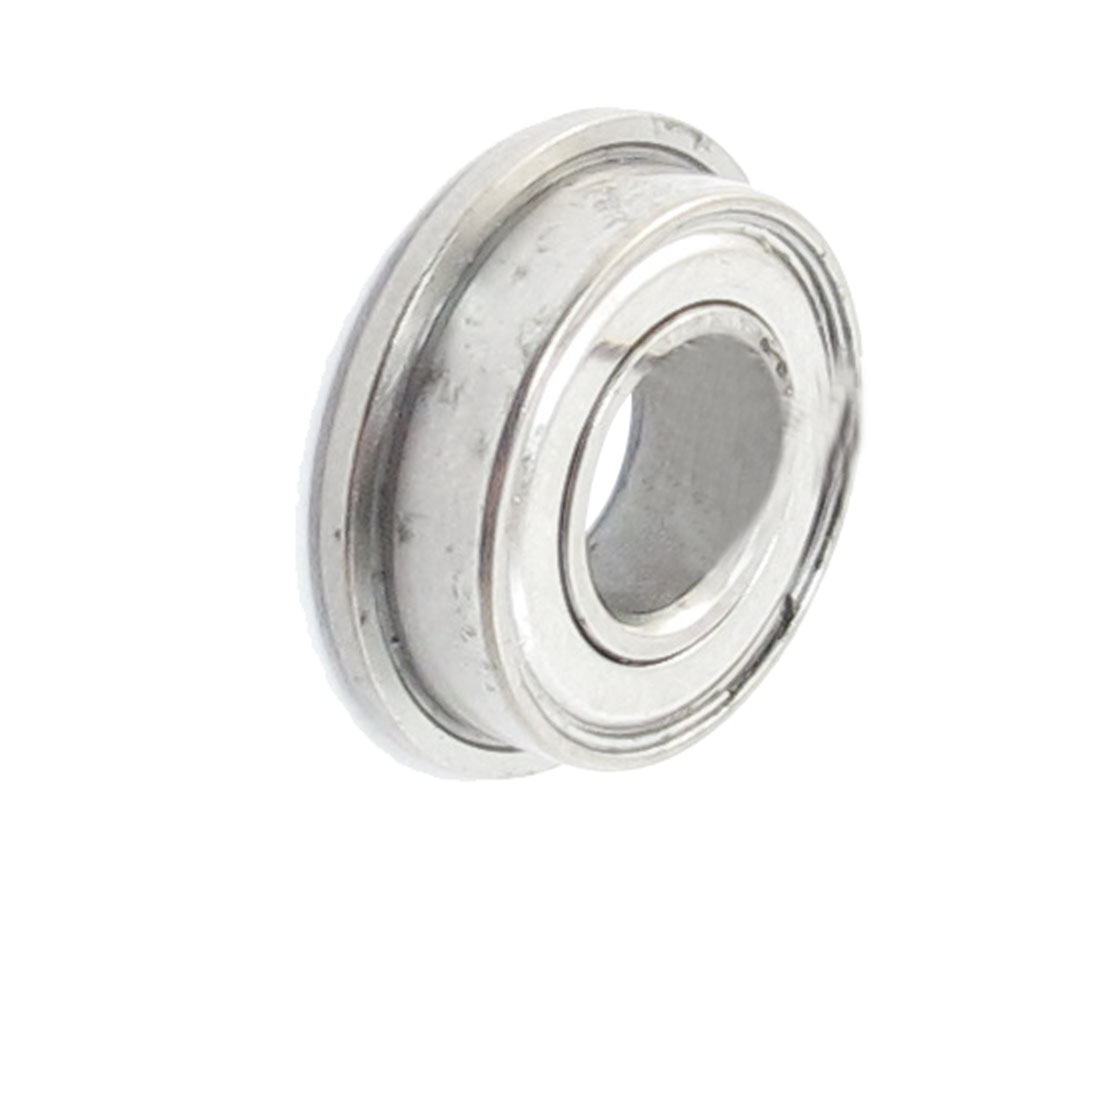 13mm x 7mm x 4mm Silver Tone Radial Shielded Deep Groove Flanged Ball Bearing